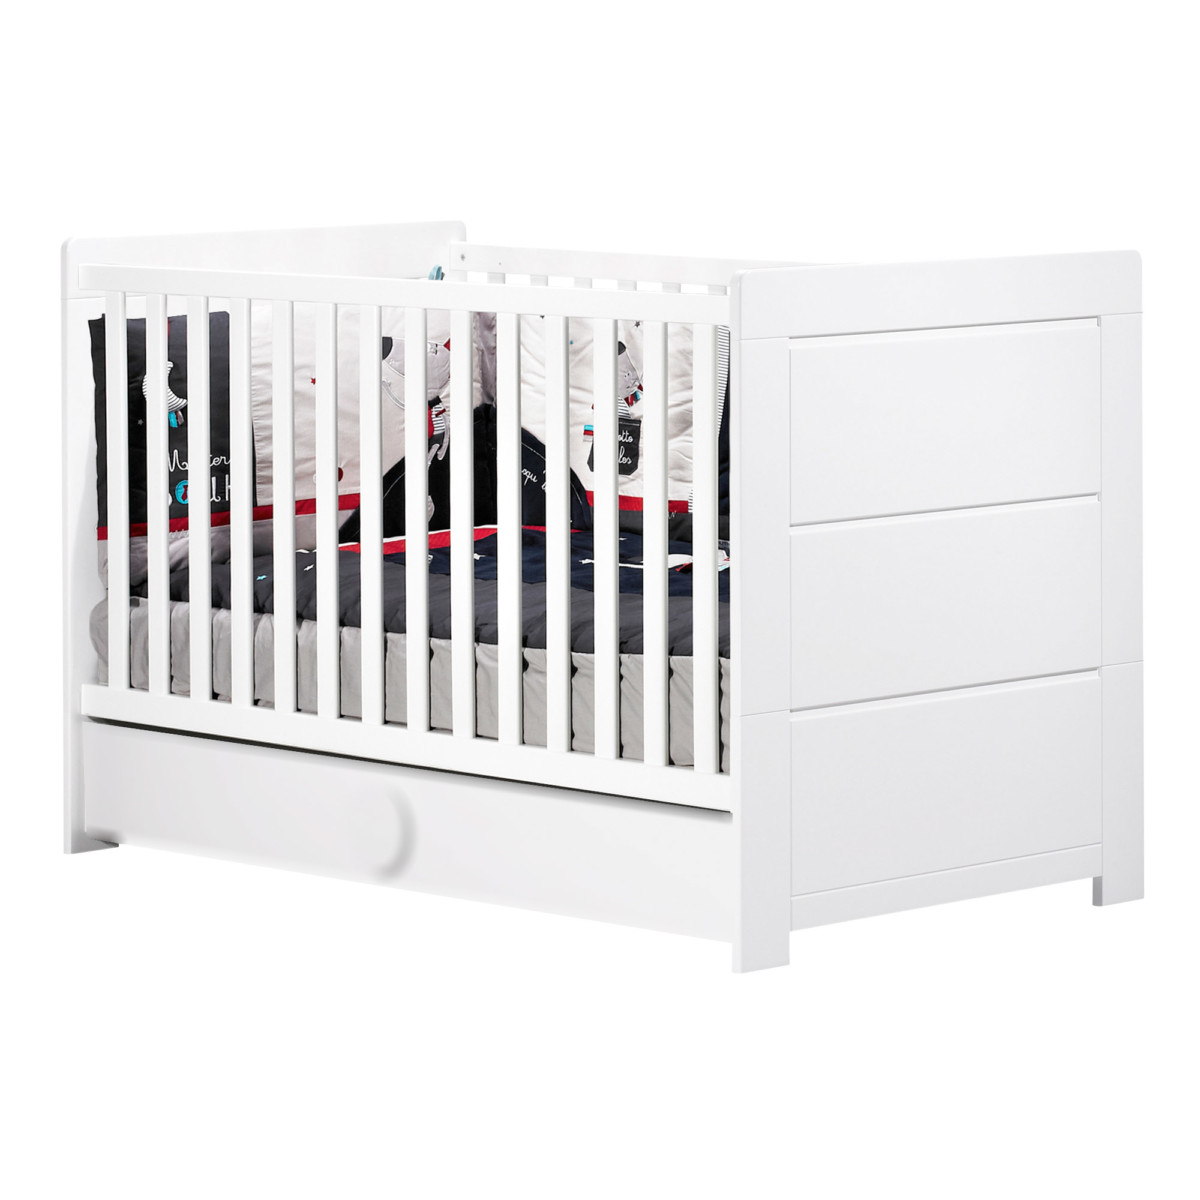 Zen Blanc lit évolutif Little Big Bed de Sauthon Signature, Lits